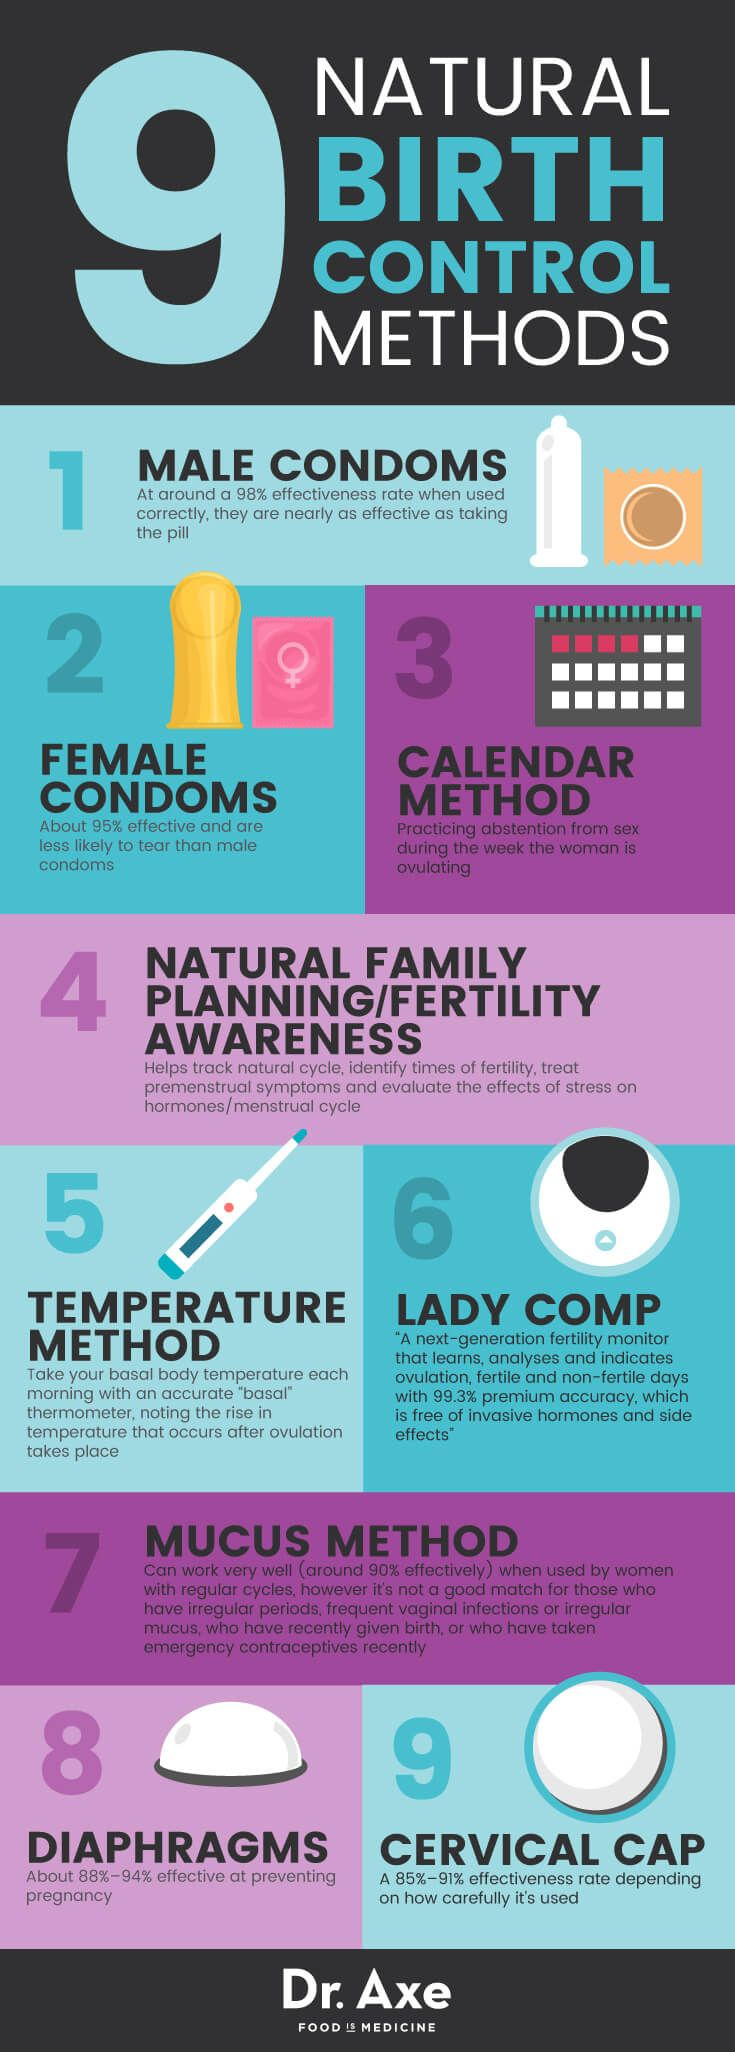 This Hormone Free Natural Birth Control Method Used In Europe For